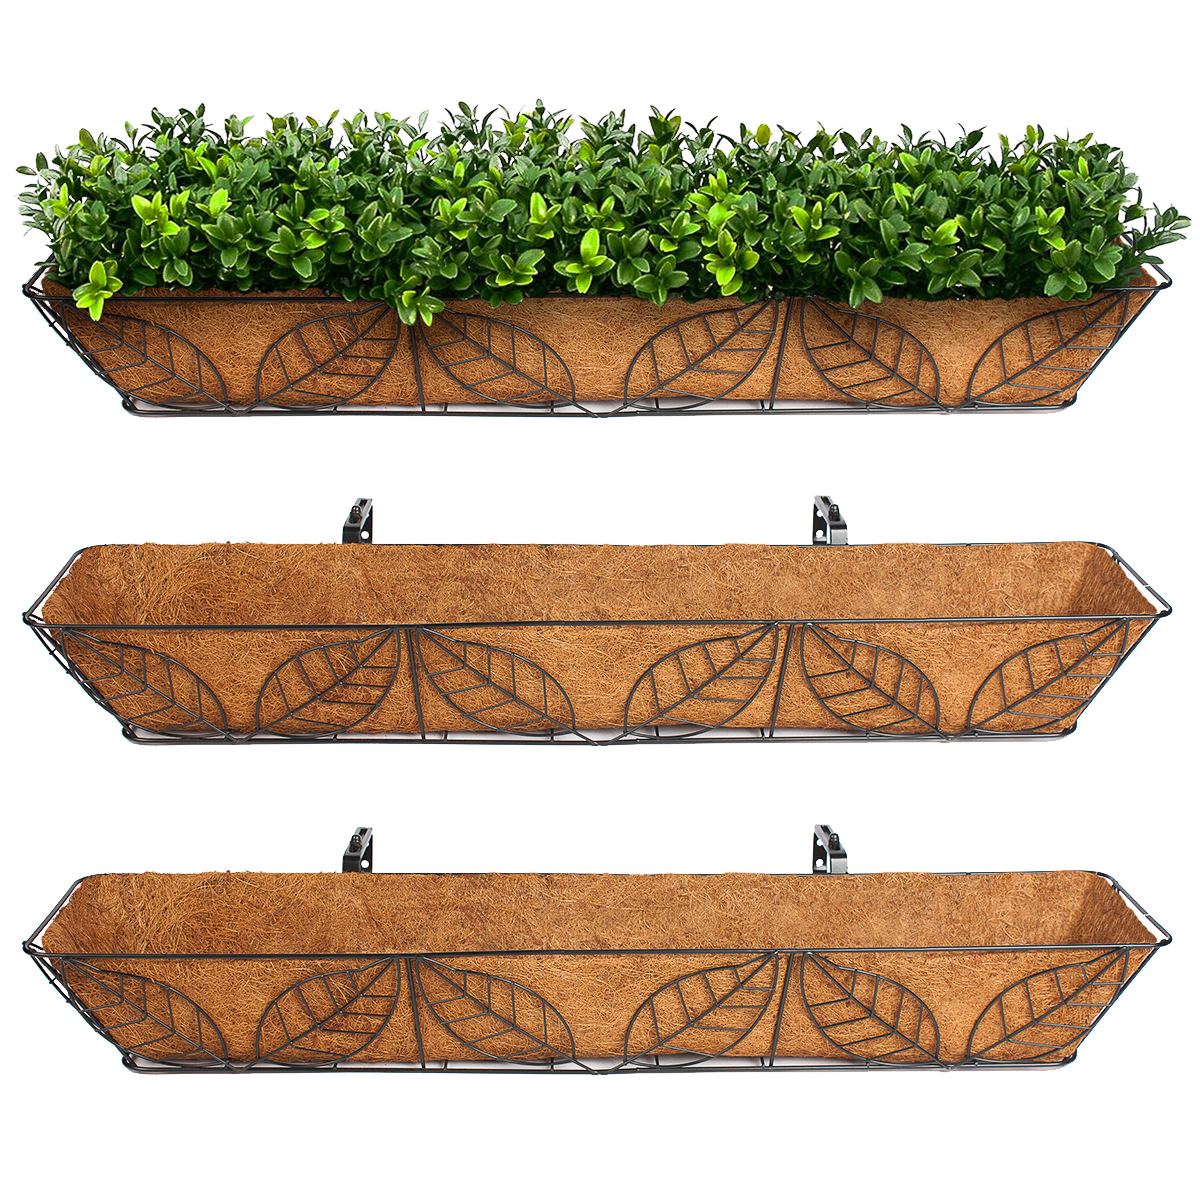 3pk Arcadia Coco Fiber Lined Wall Trough Wire Metal Leaf Basket Planter Plant Flower by